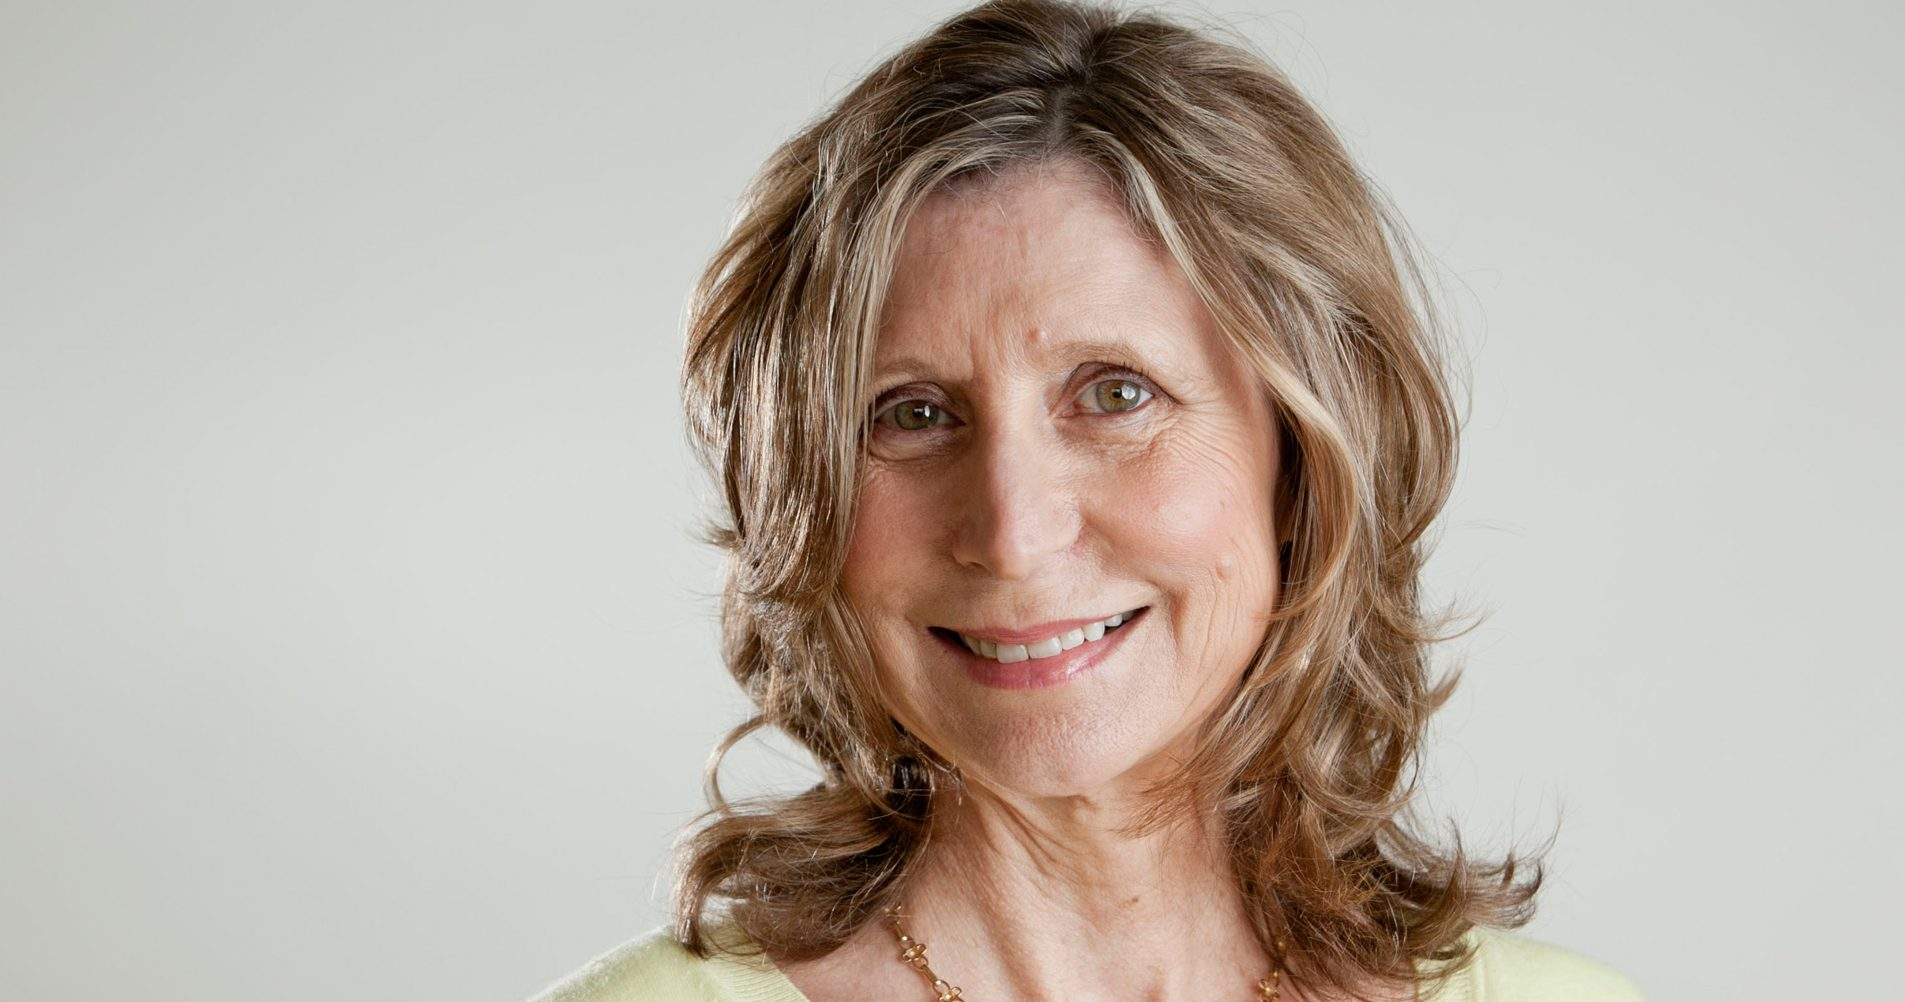 Christina Hoff Sommers, the ?Factual Feminist,? to speak at Bucknell